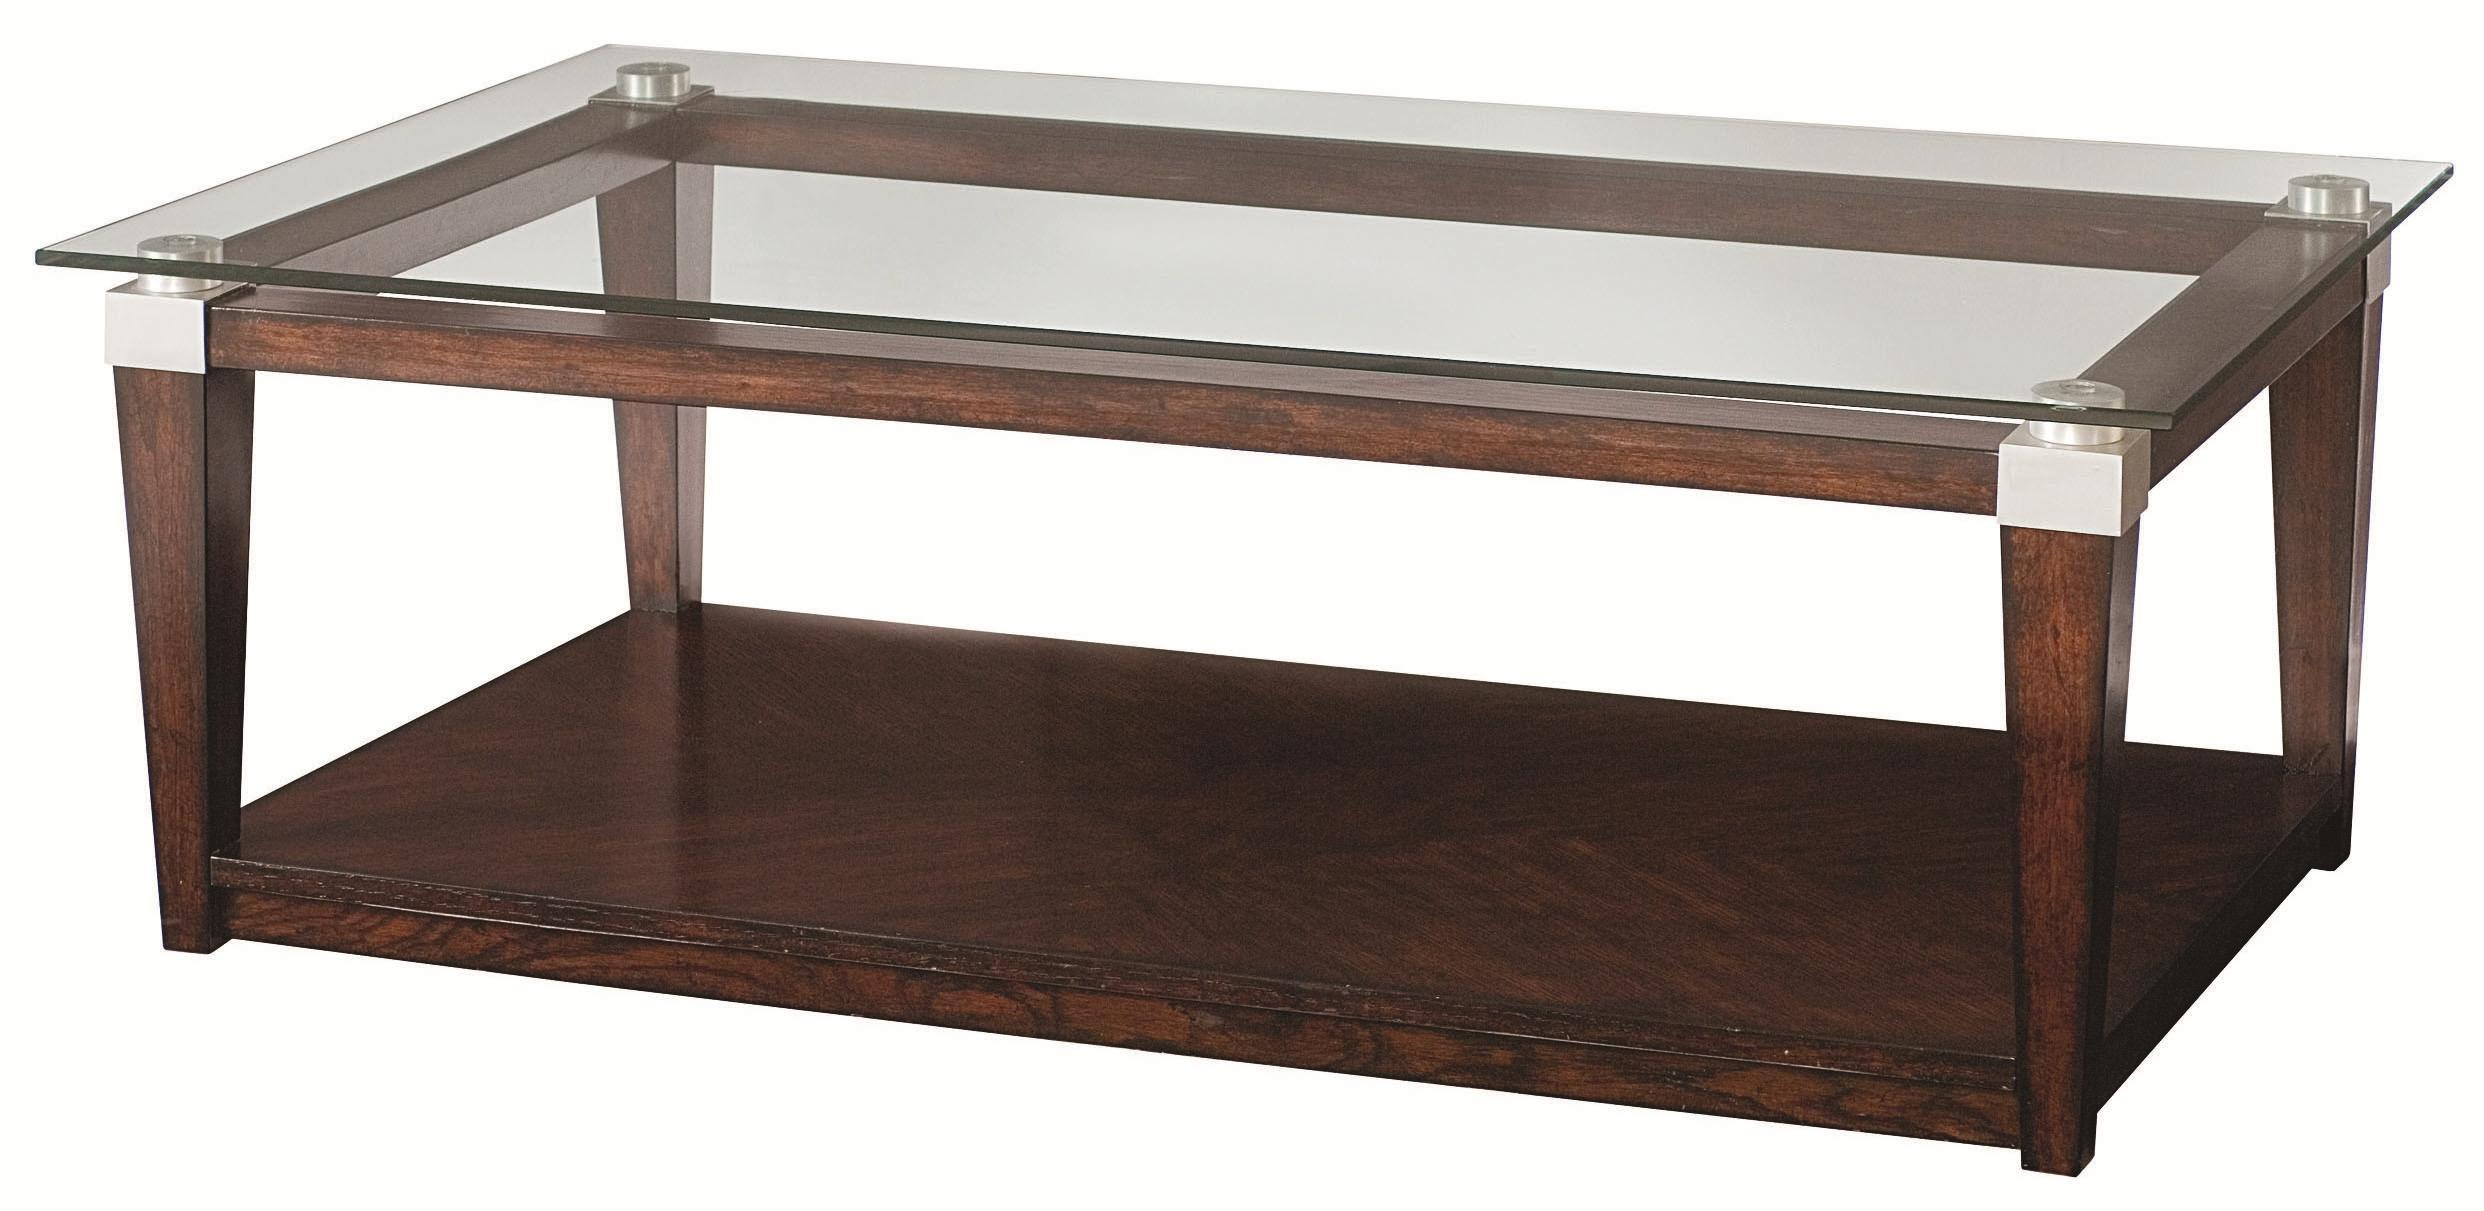 Contemporary Rectangular Coffee Table with Glass Top by Hammary